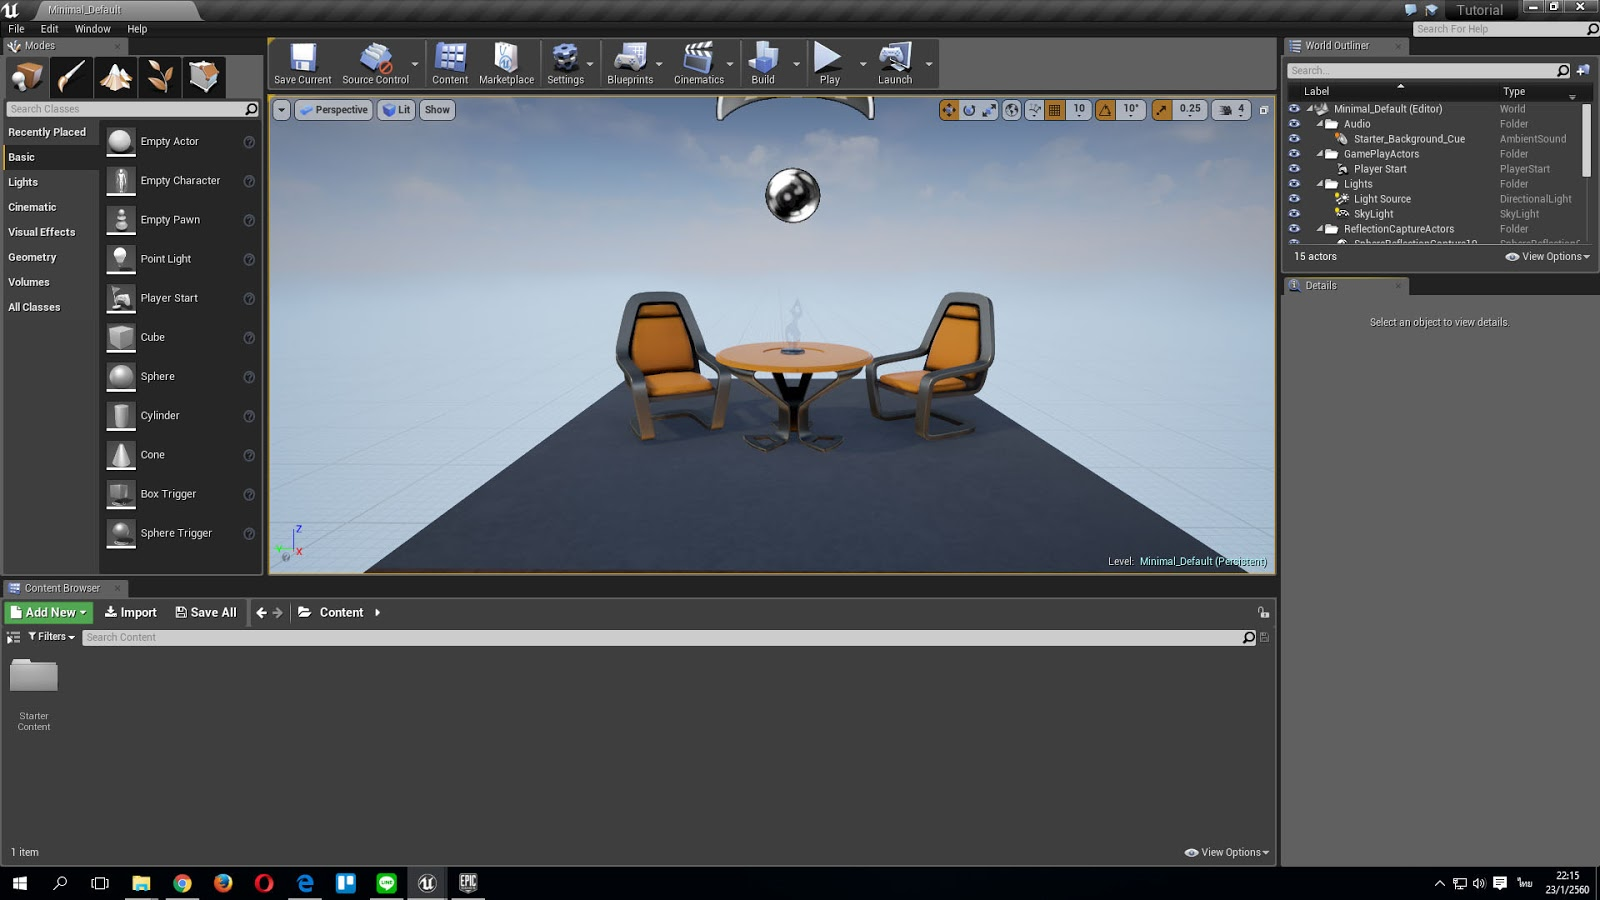 Unreal engine tutorials for beginners